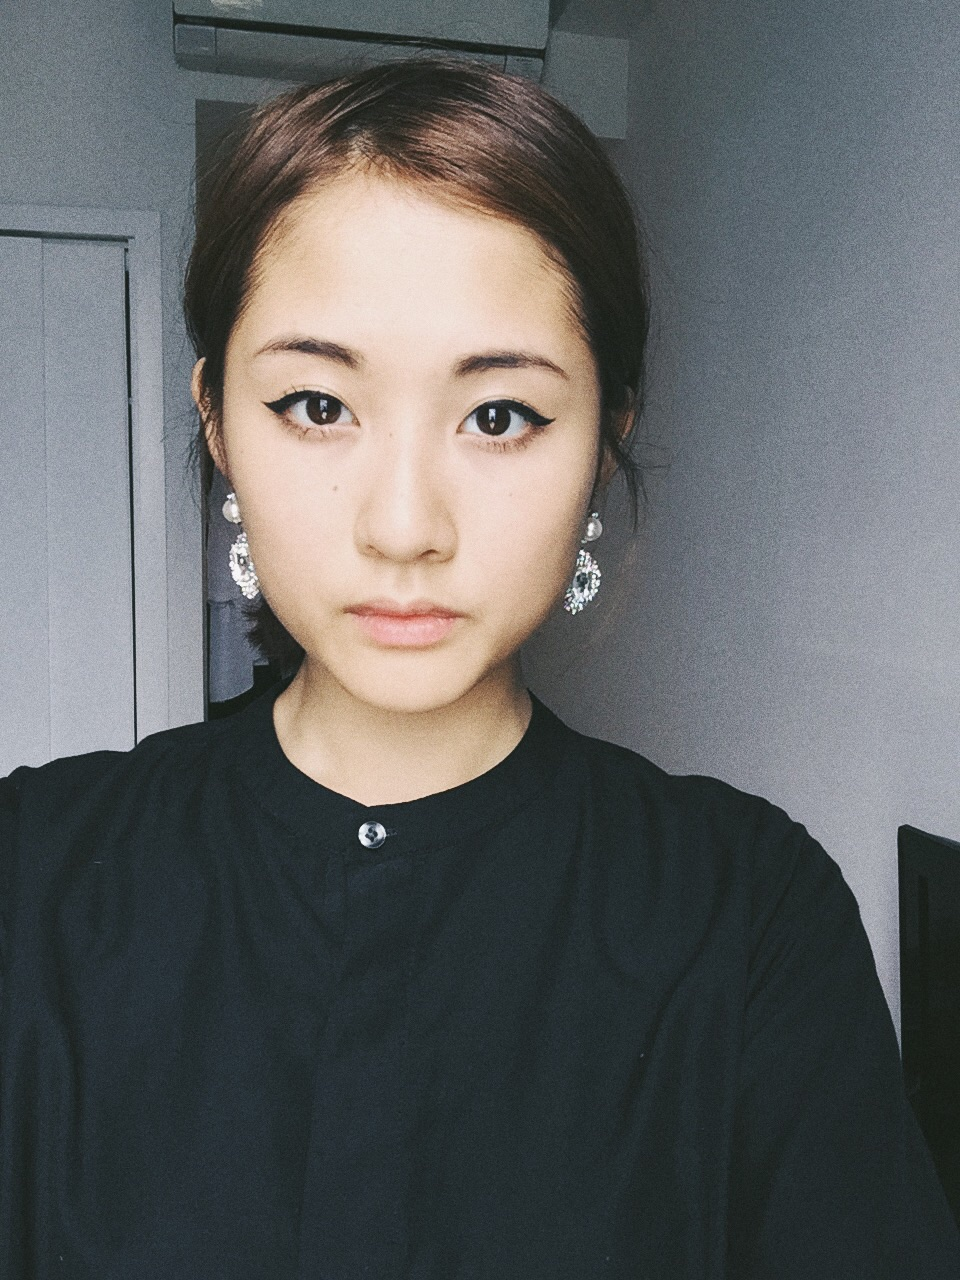 I'm so lazy to do make-up, even eyeliner is too much. But I had to look pretty that day so I overcsme my laziness lol.